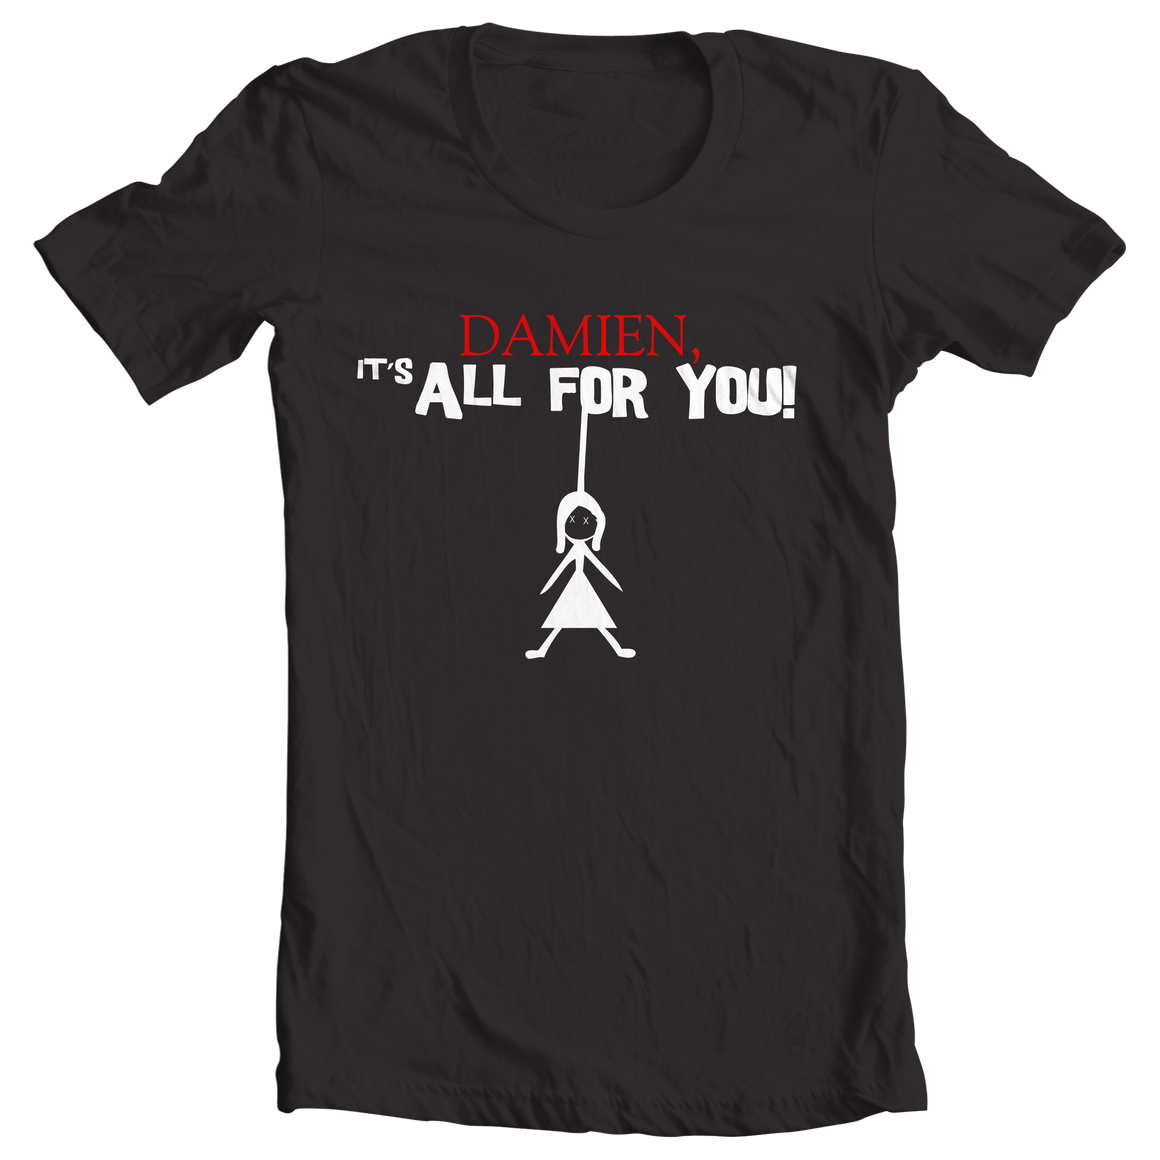 Damien Its All For You Male Tee - The Great Tshirt Store